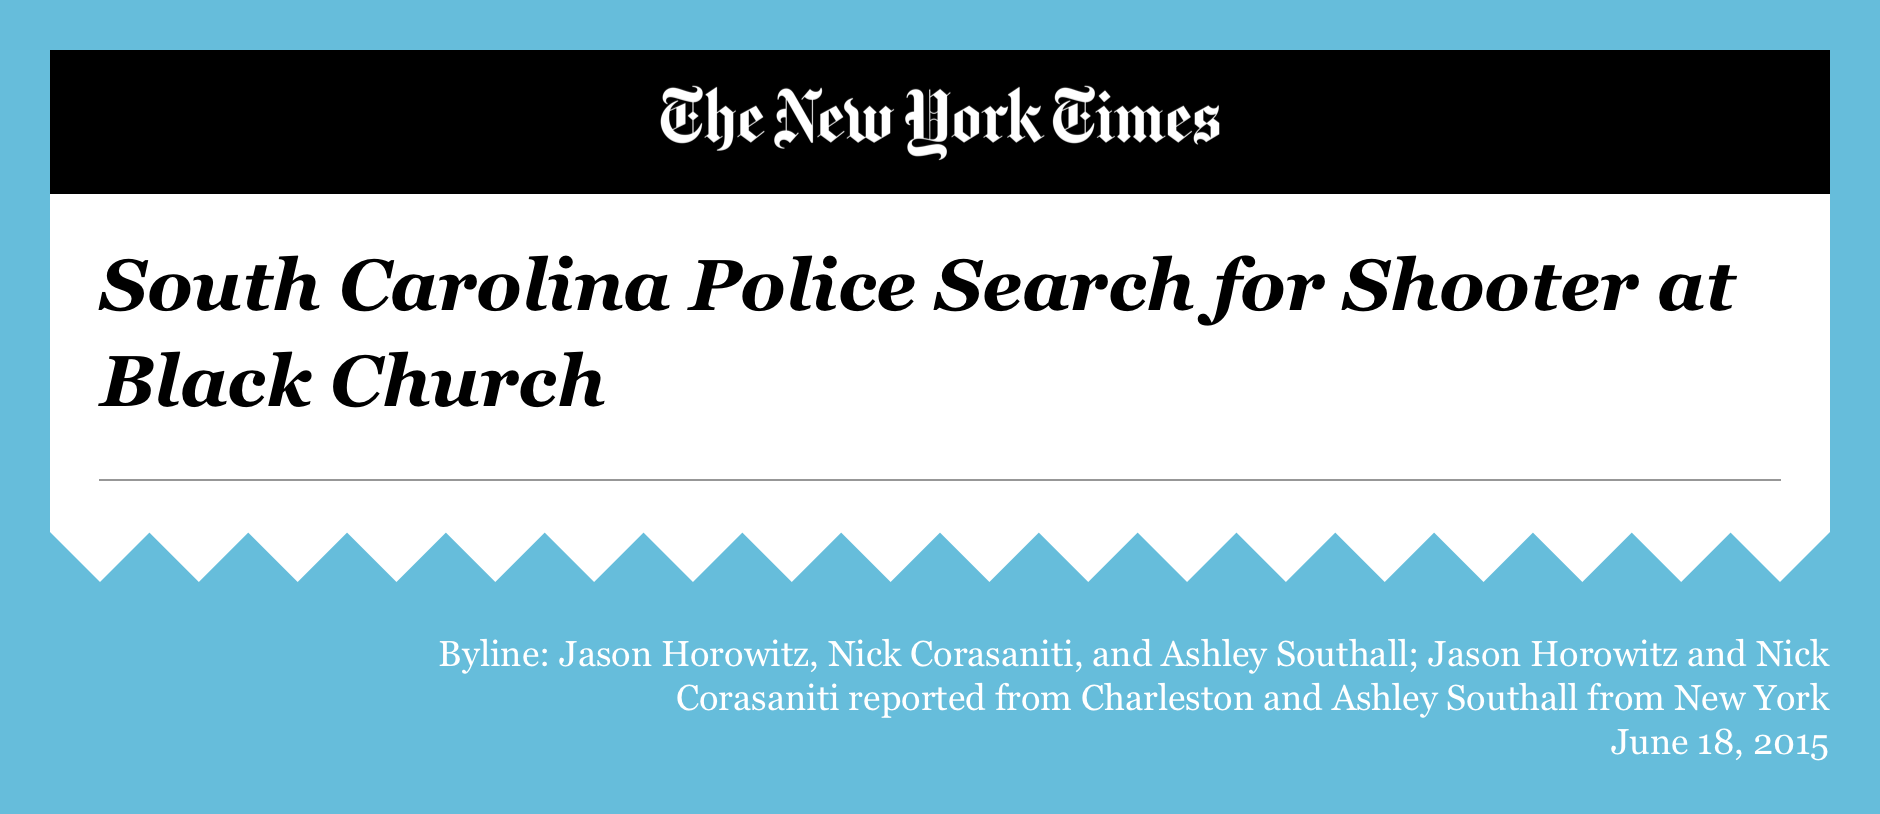 South Carolina Police Search for Shooter at Black Church.png